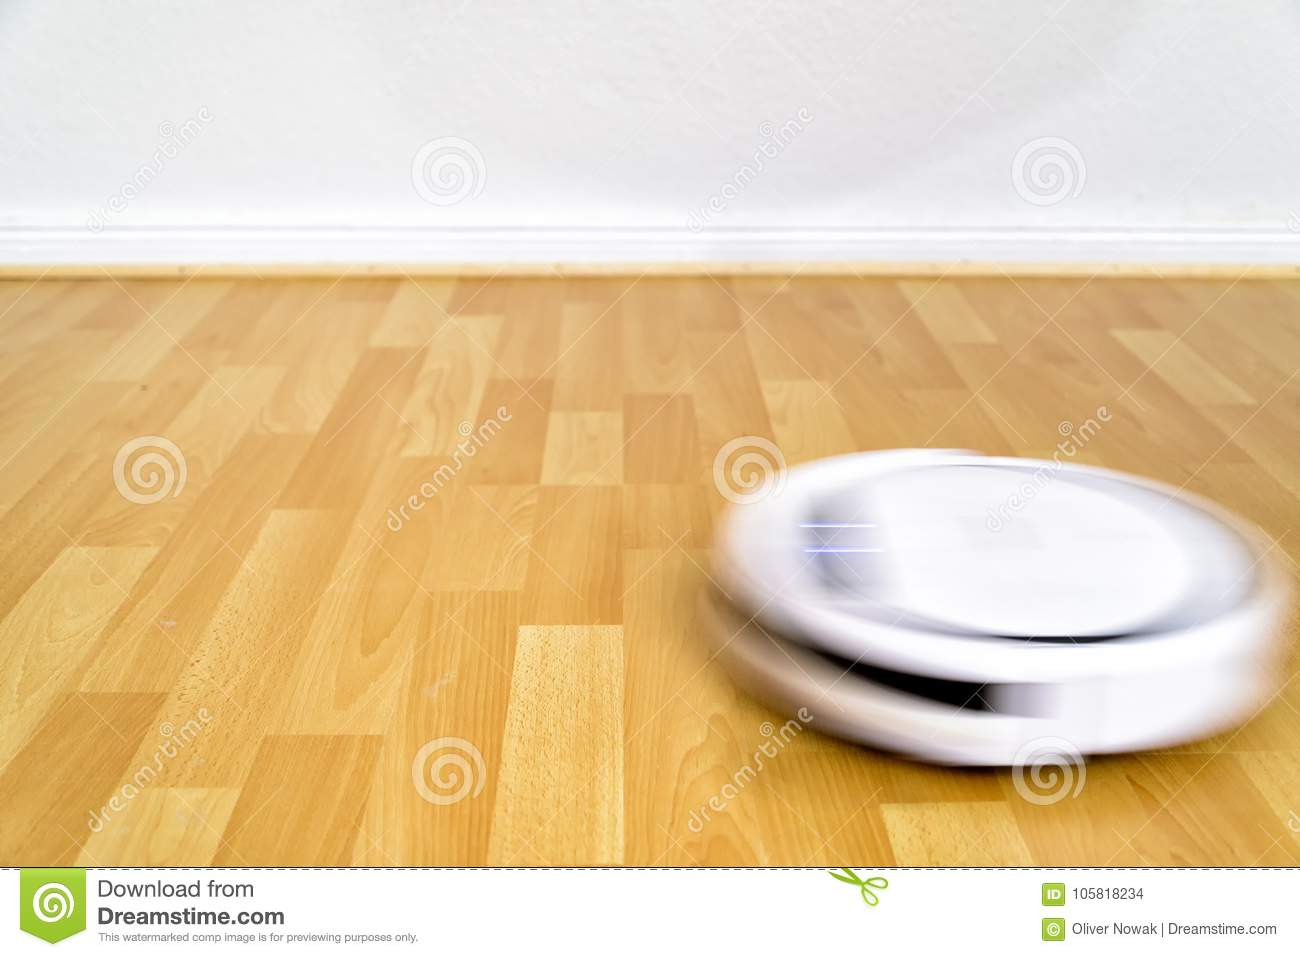 Cleaning Robot On The Floor Stock Photo - Image of clean